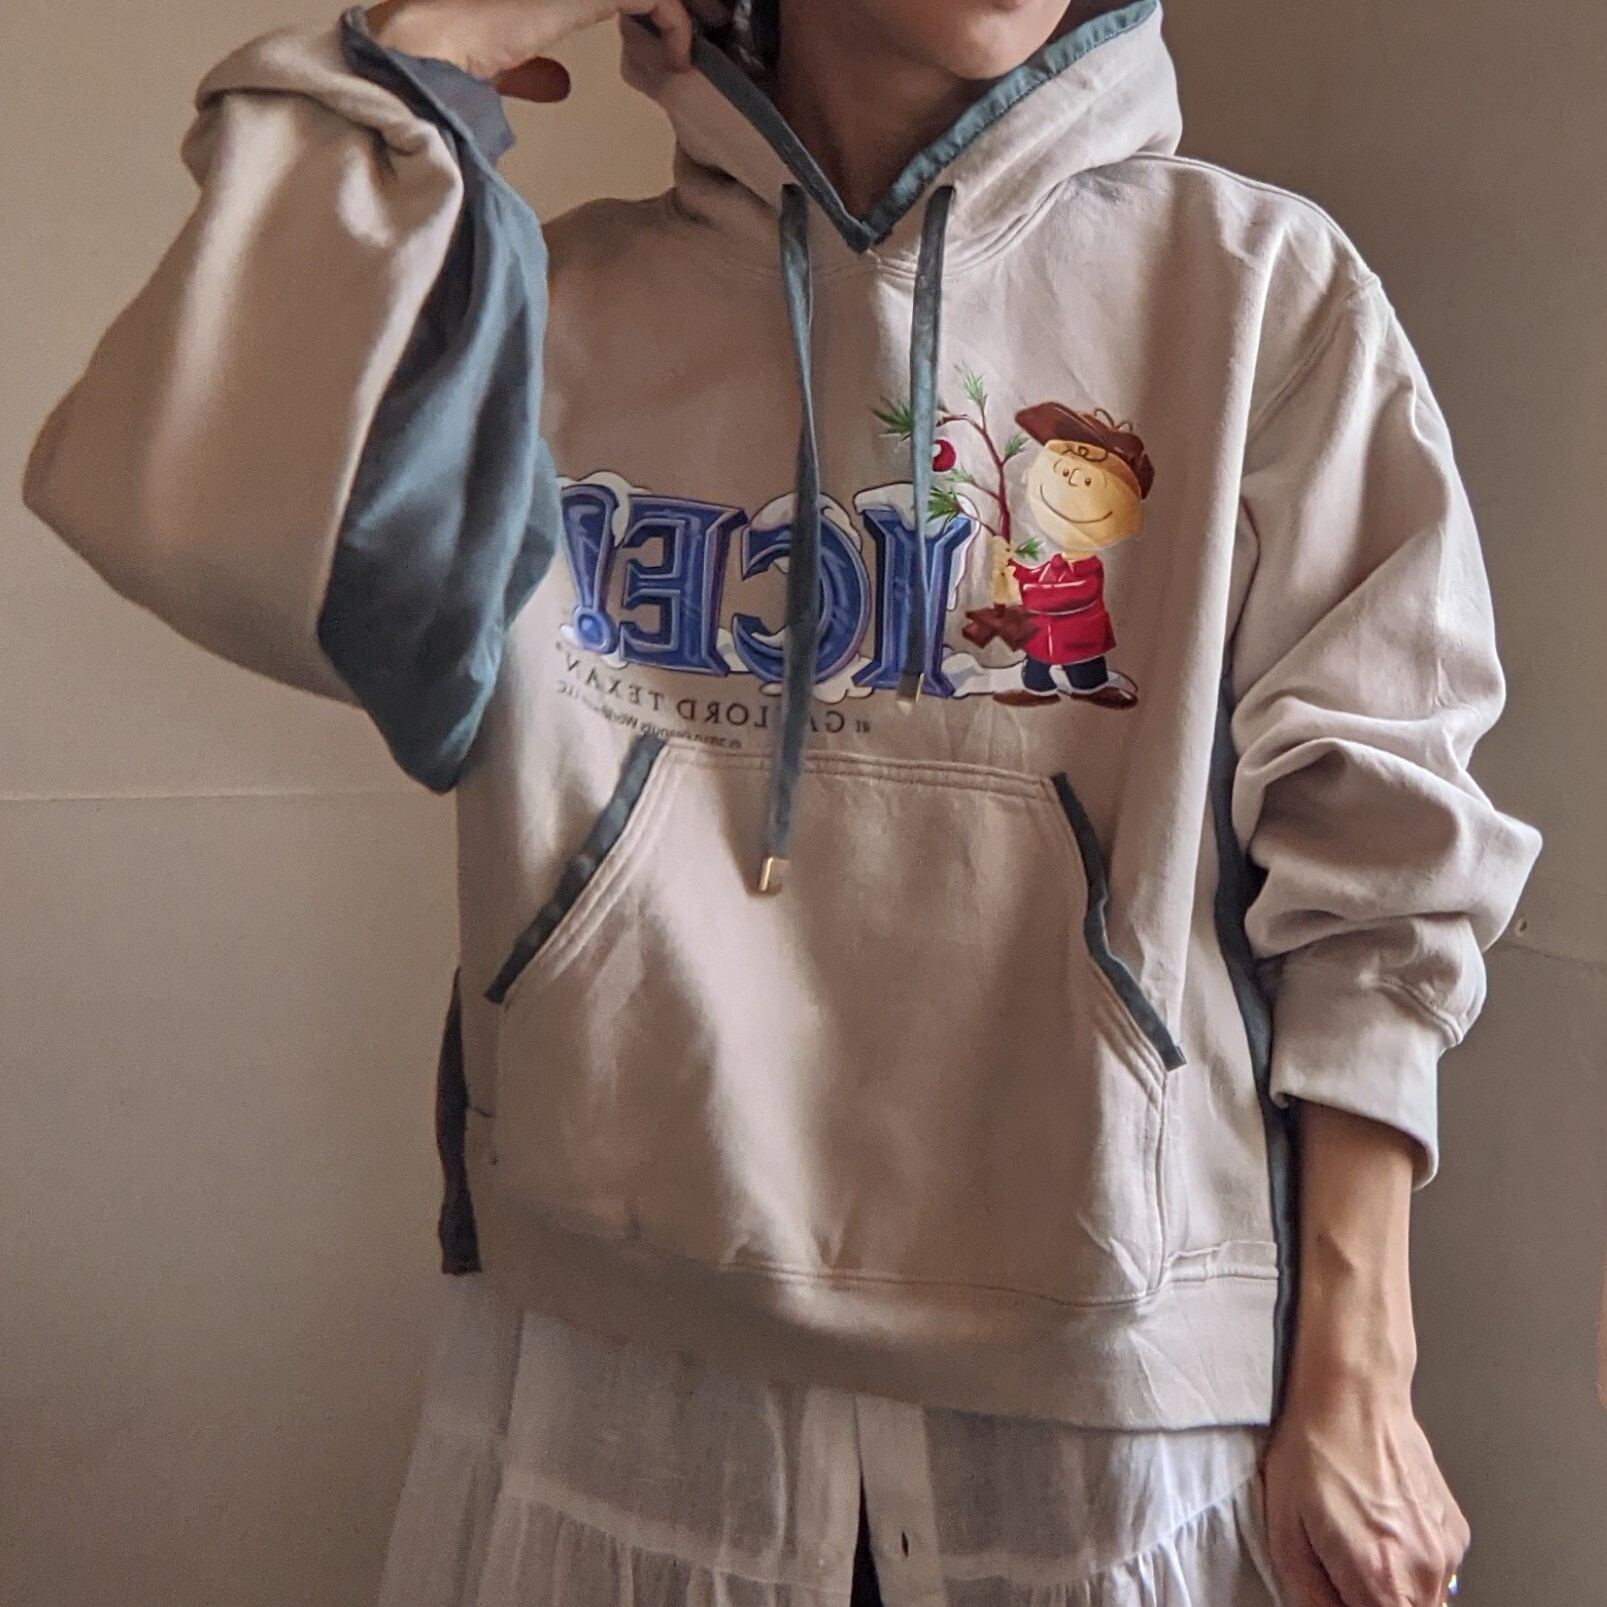 【 REHERSALL 】リハーズオール /  one of a kind series / remake sweat hoodie / リメイクパーカー / 1点物